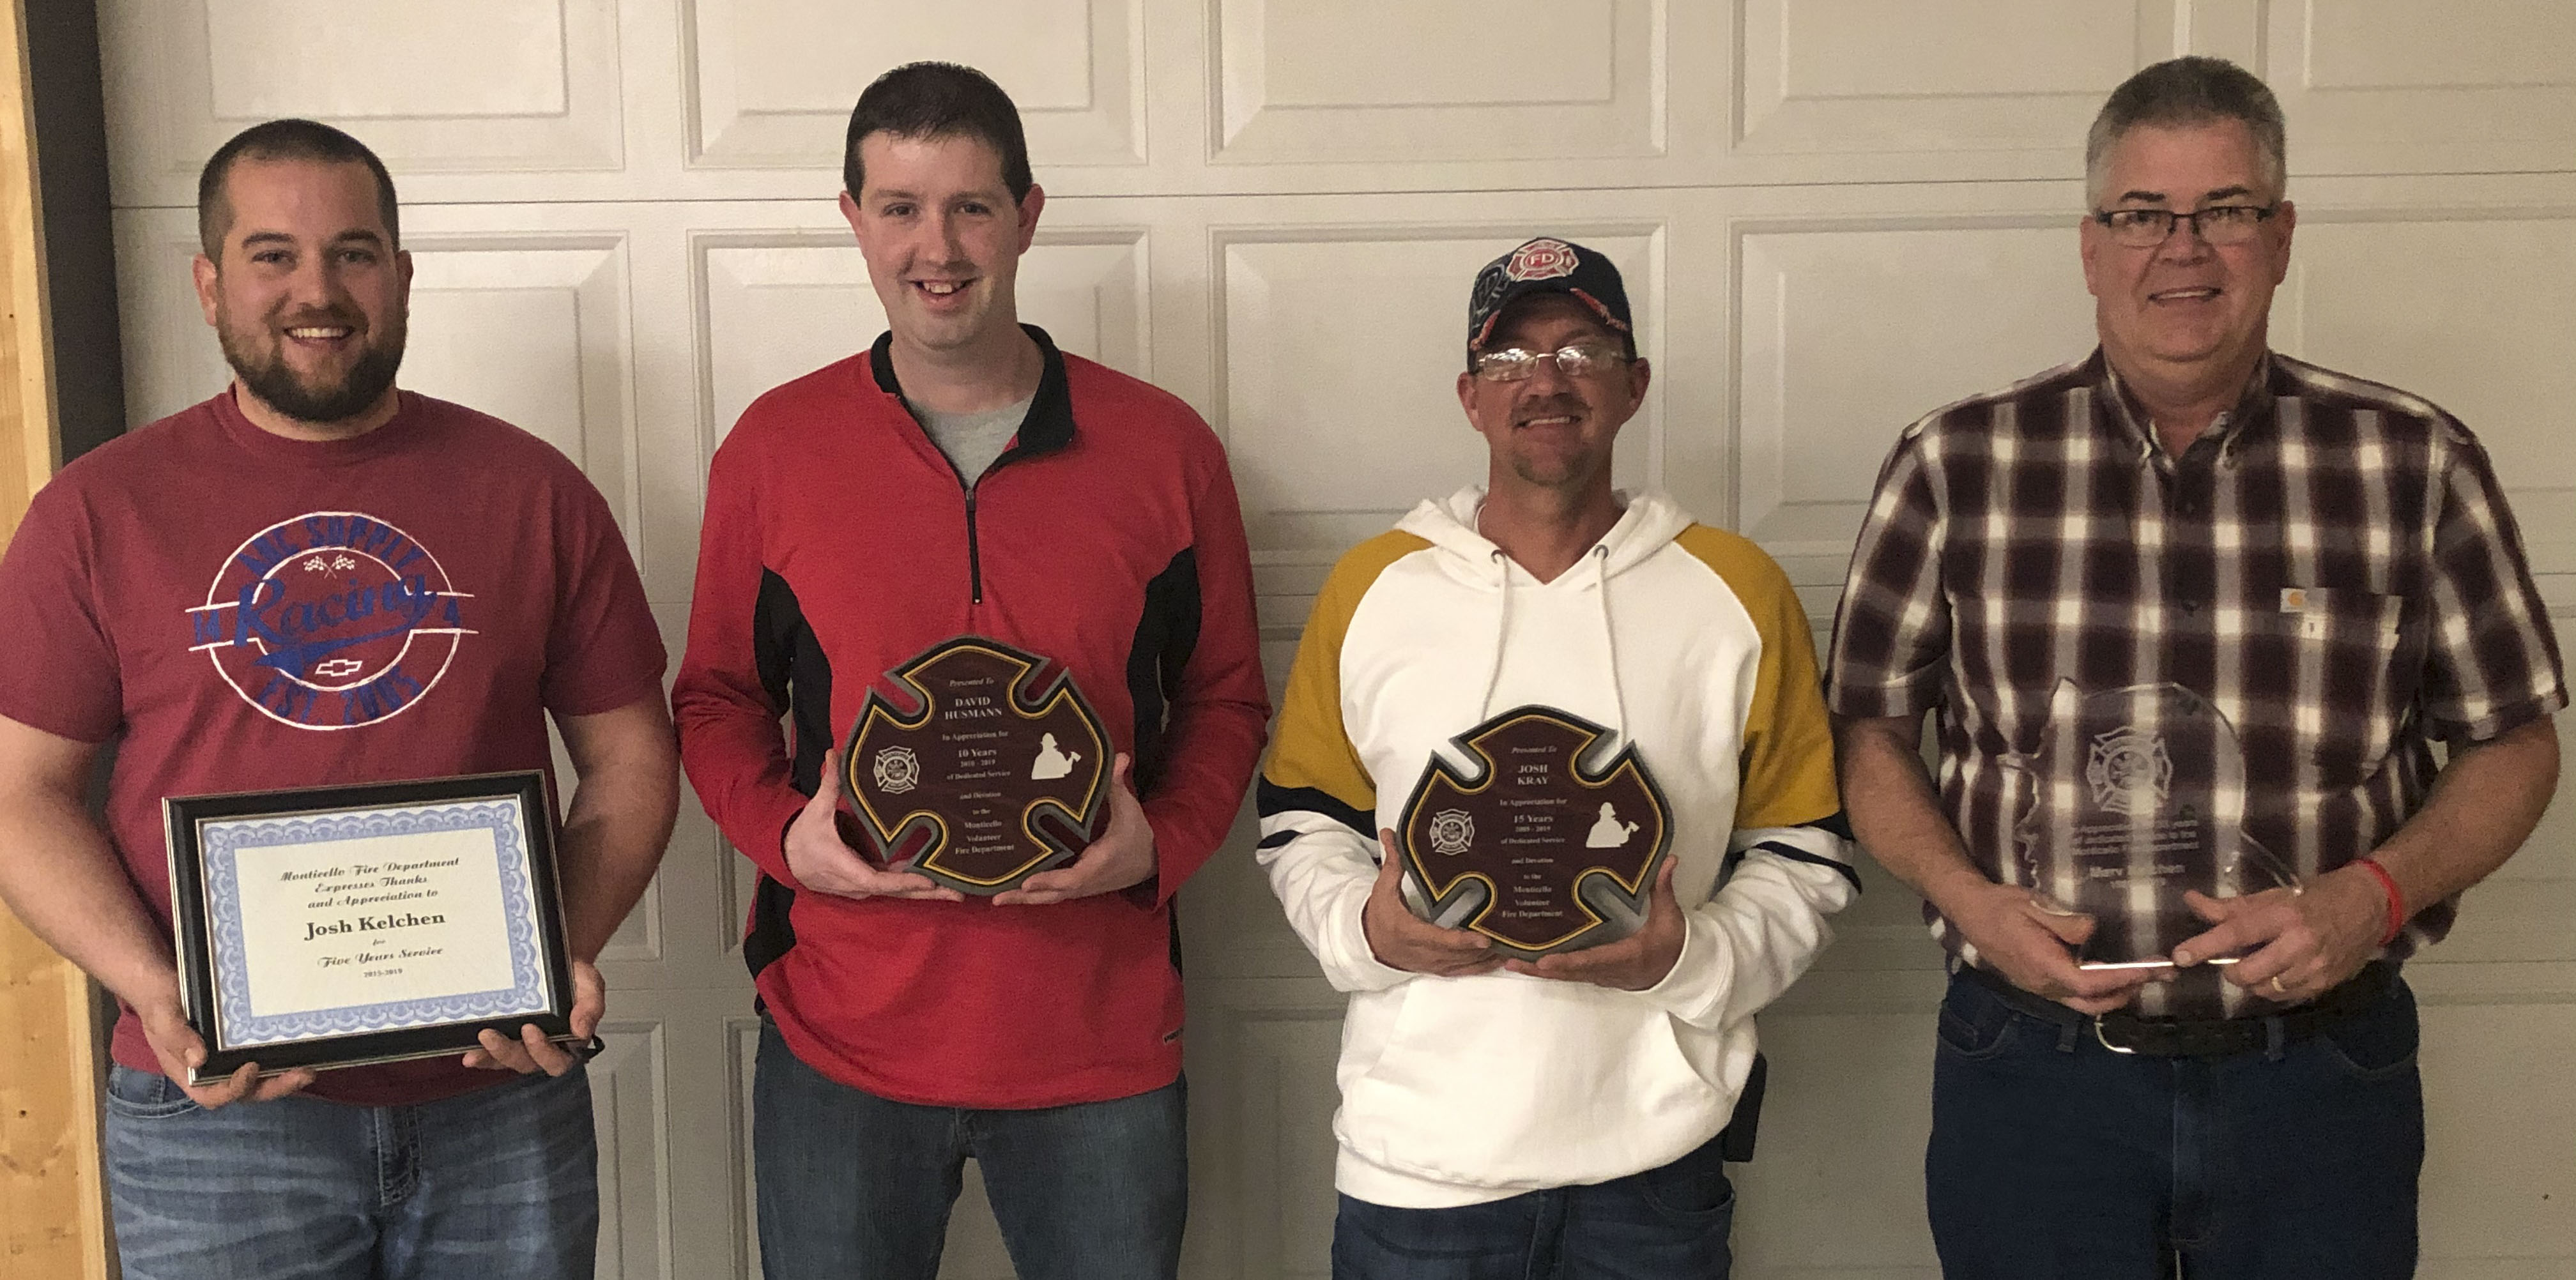 Four firefighters received awards for their years of service to the department. From left are Josh Kelchen, five years; David Husmann, 10 years; Josh Kray, 15 years; and Marv Kelchen, 35 years.